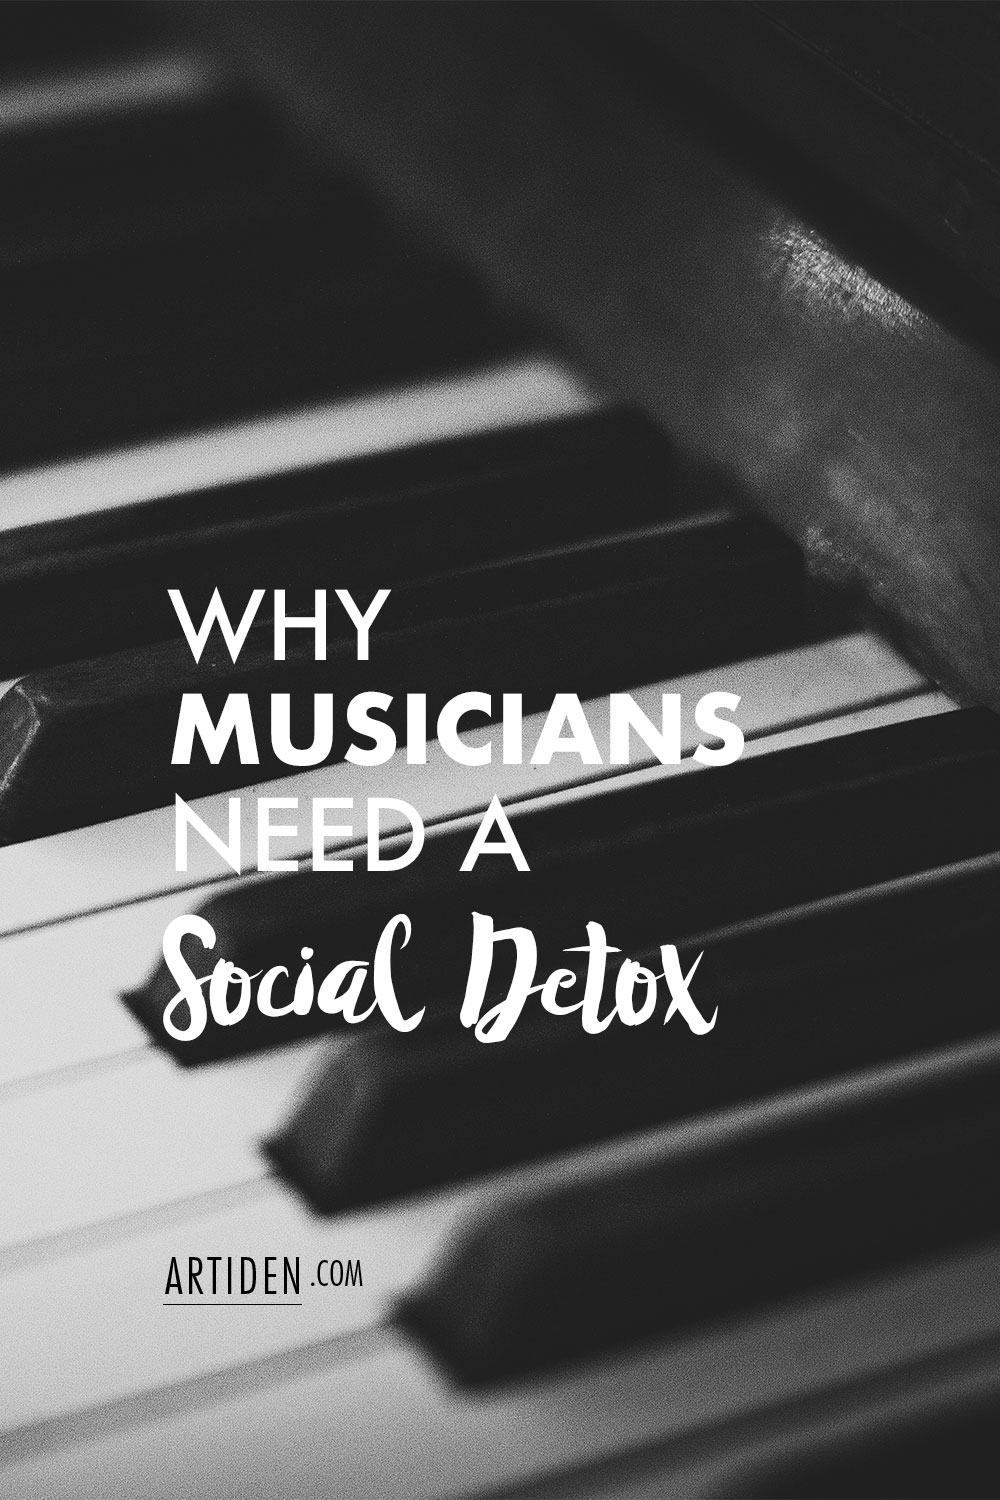 Why Musicians Need a Social Detox